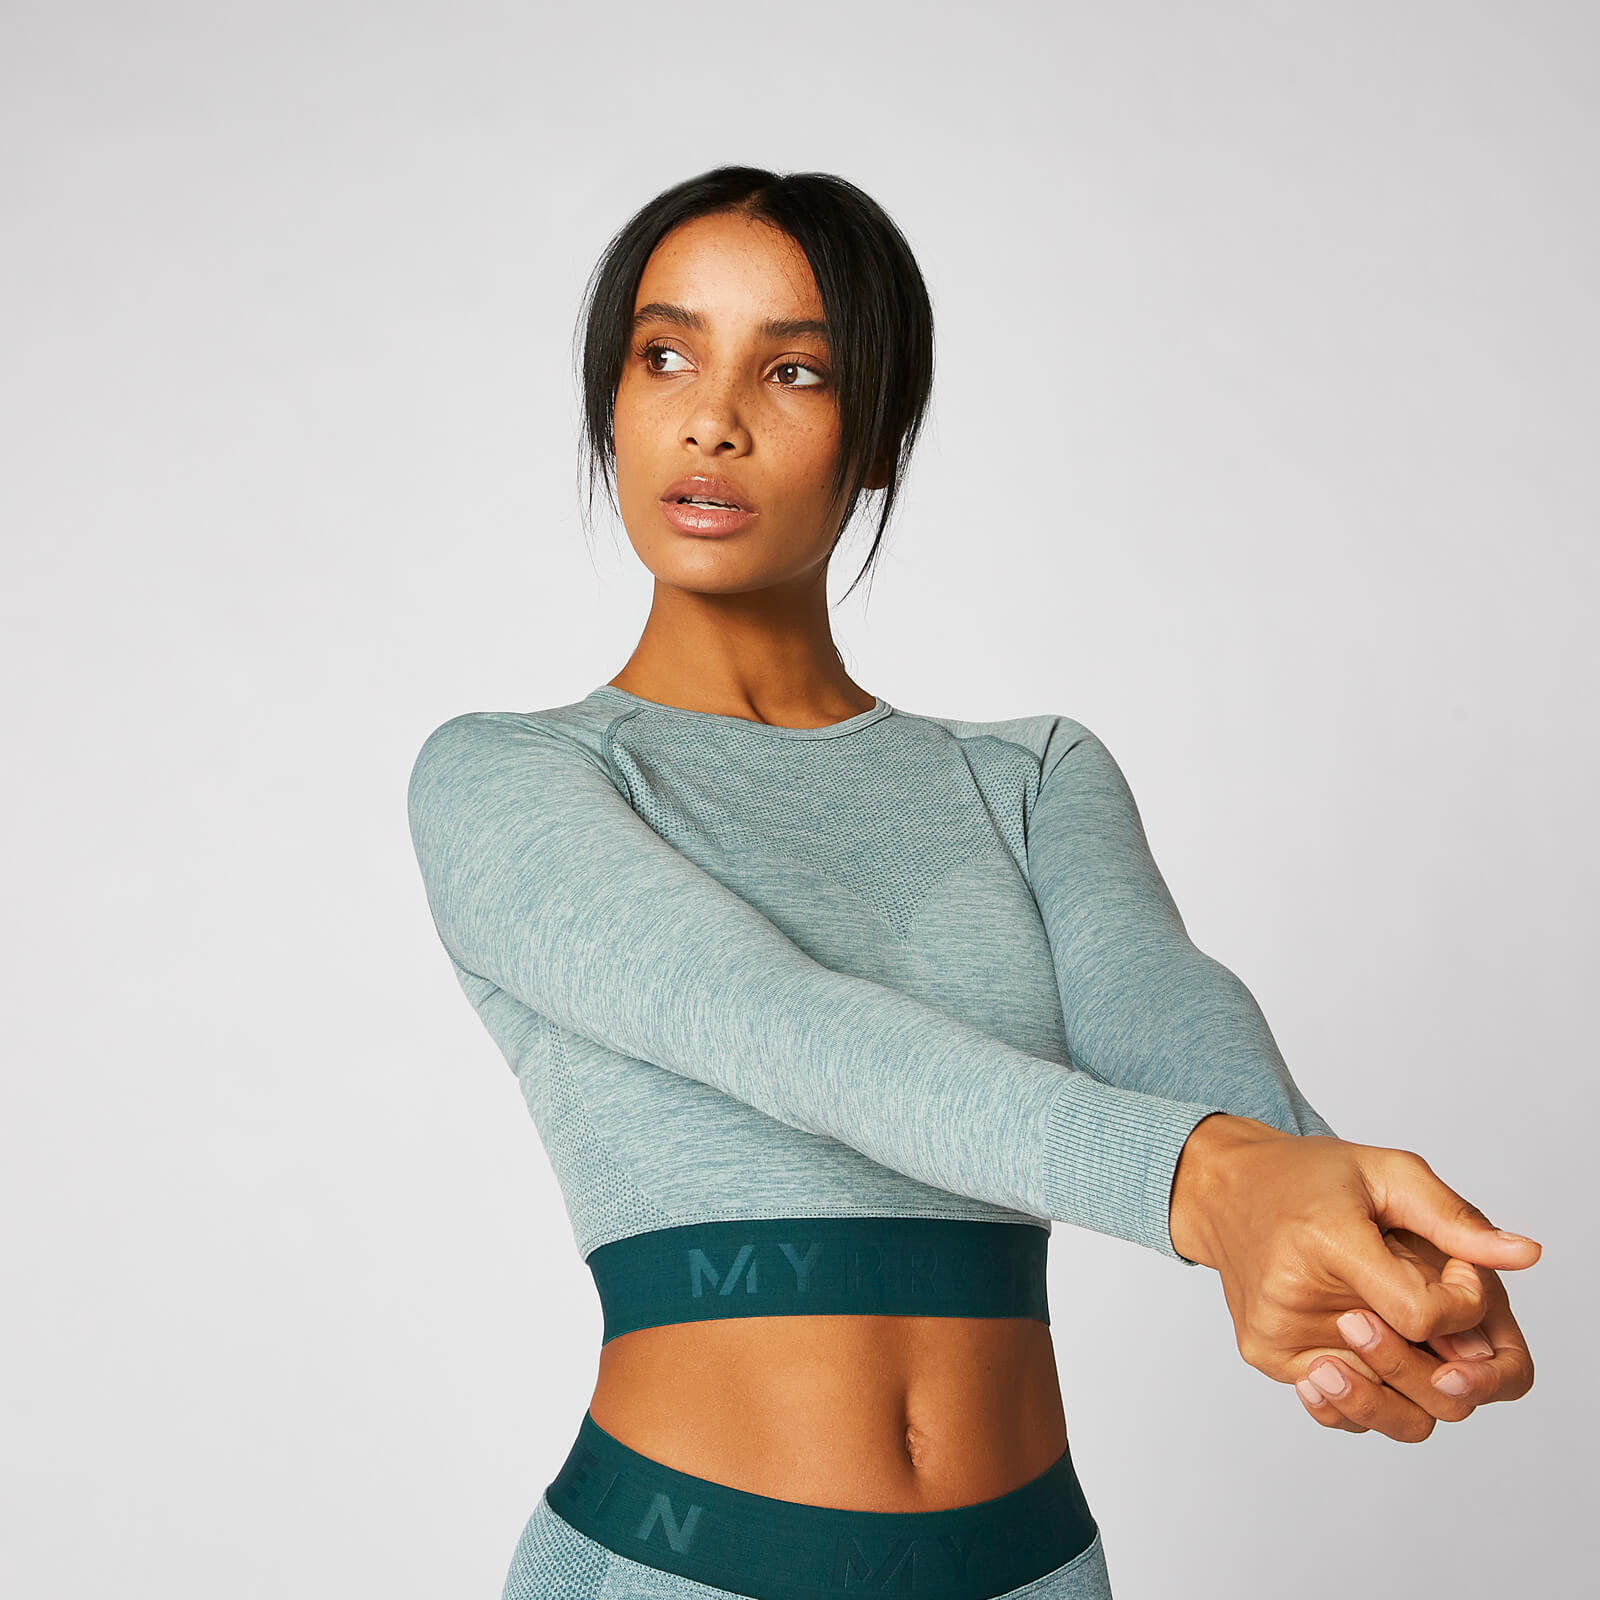 03a7fe118eed54 ... Inspire Seamless Crop Top - Teal - XS - Teal